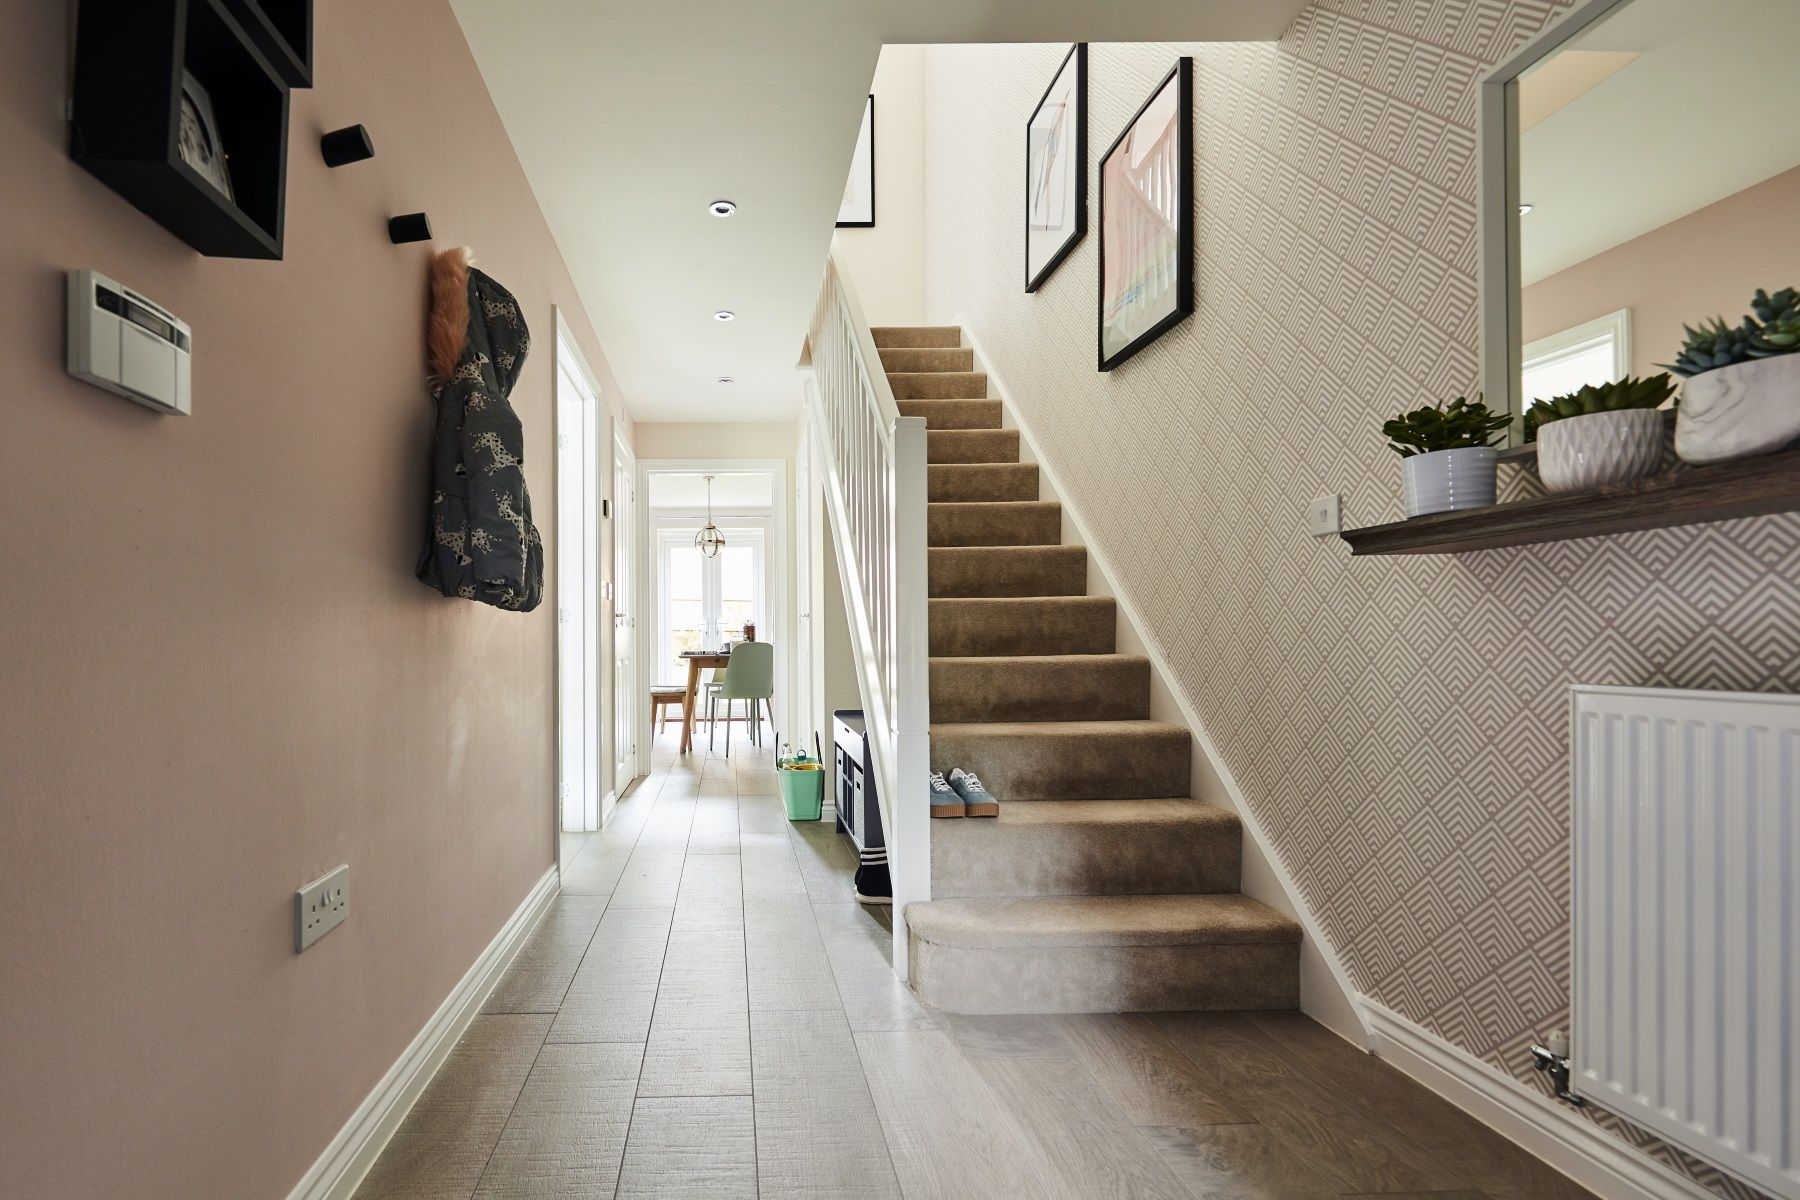 TW Exeter - Mayfield Gardens - Huxford example hallway